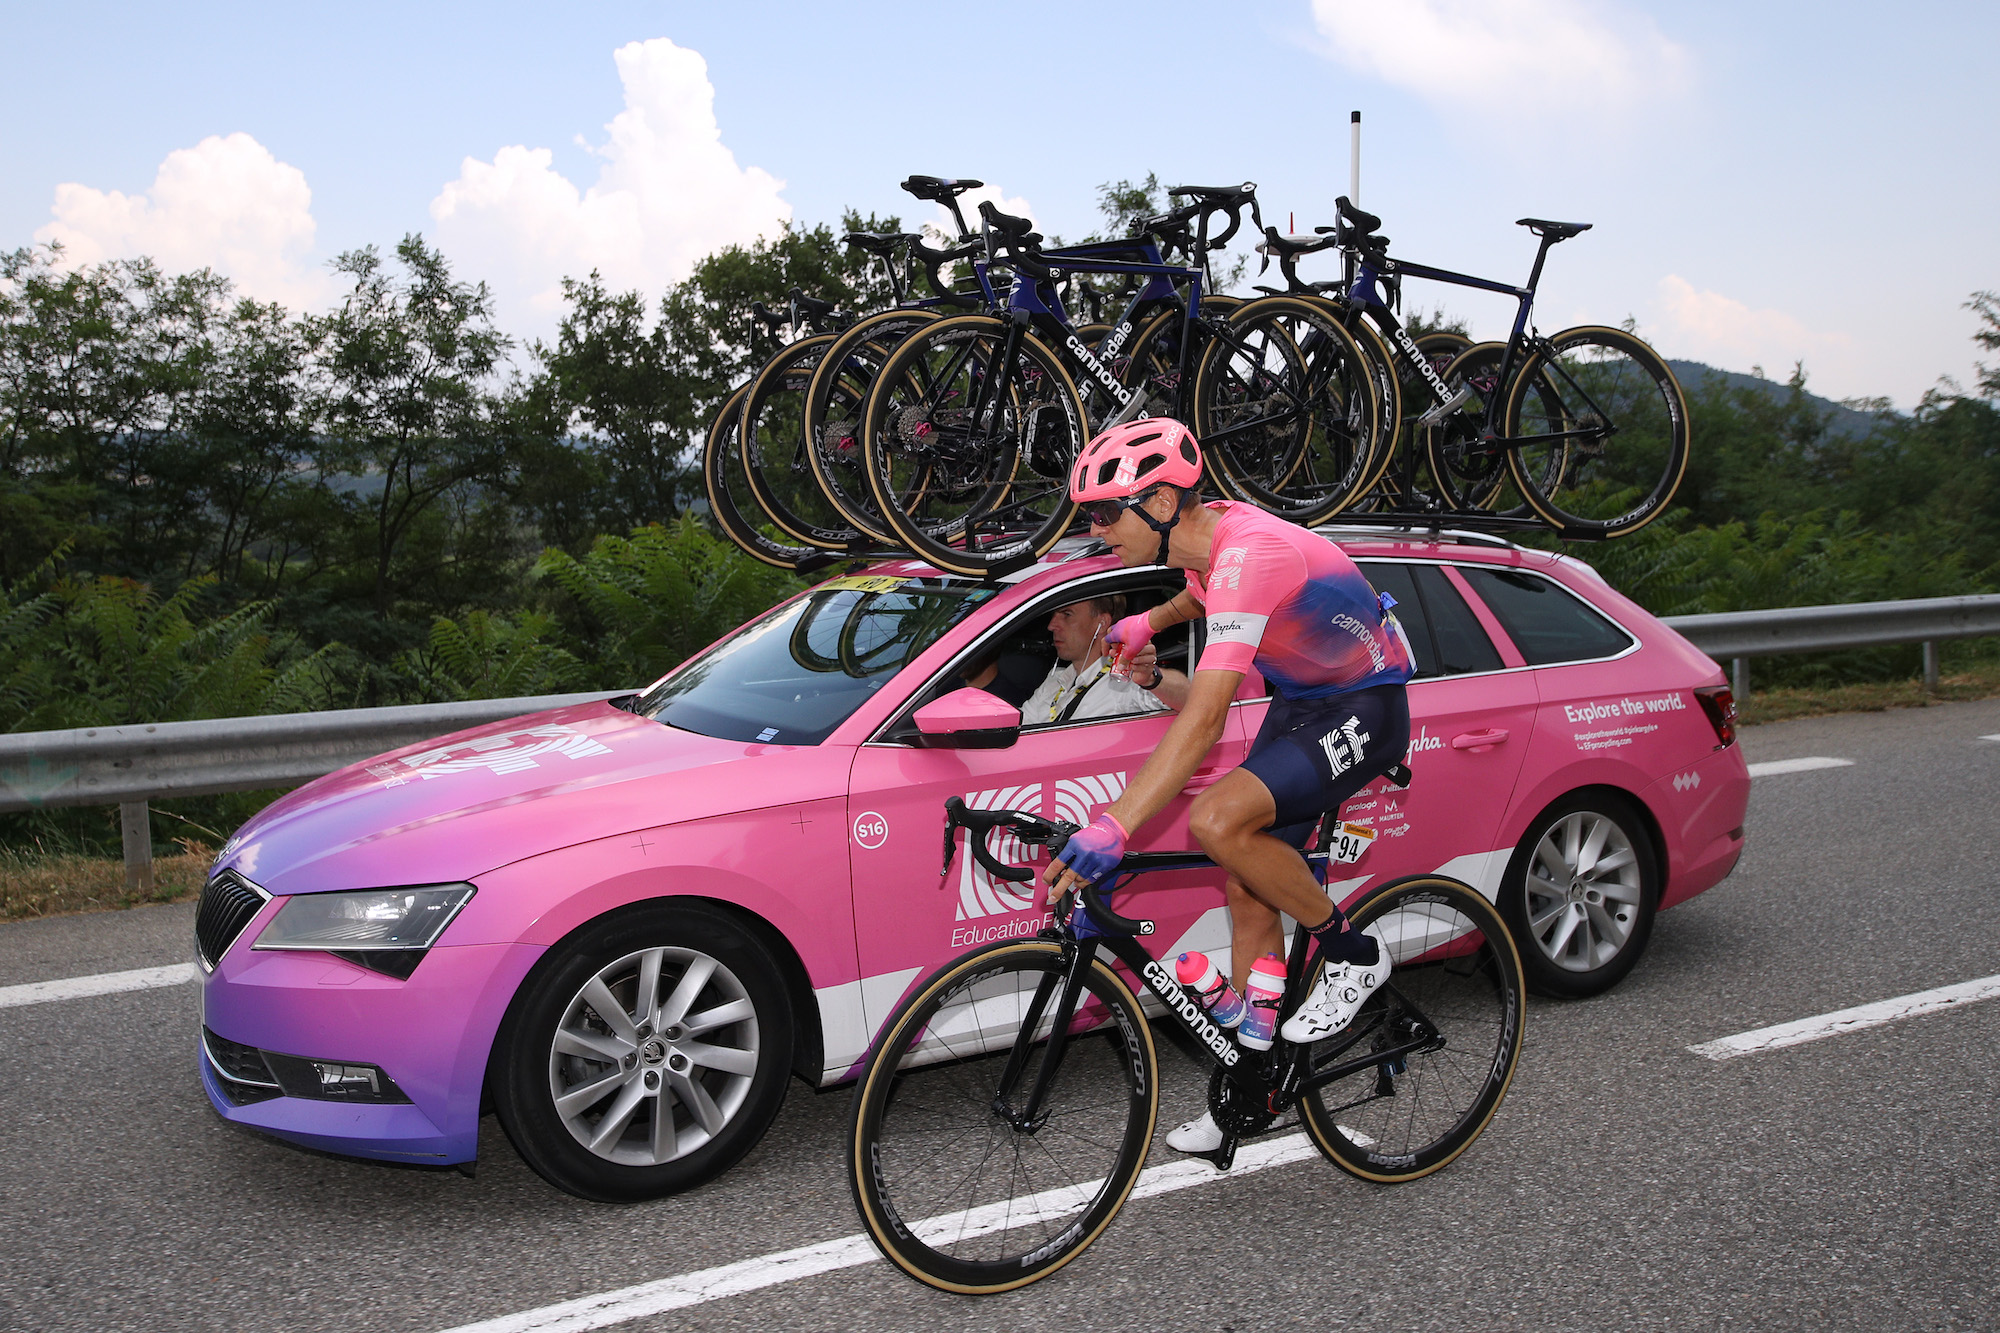 Which team was fined the most at the Tour de France? And what was the most common fine?